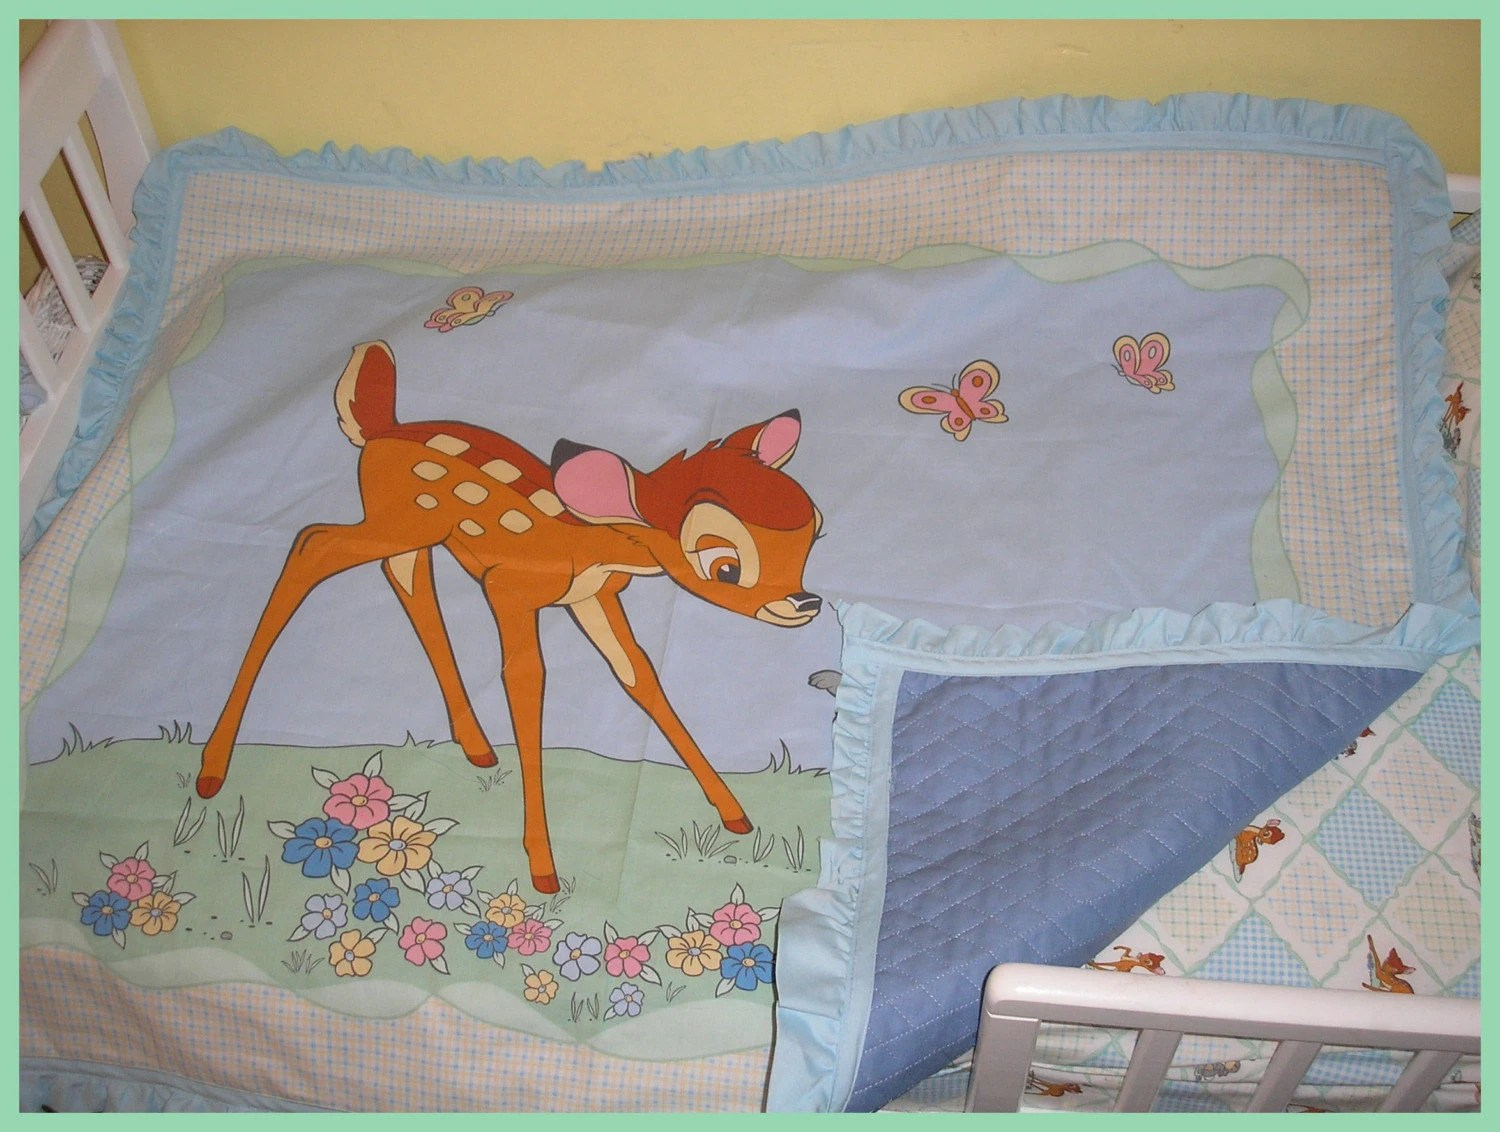 New Toddler Crib bedding set made in BAMBI and THUMPER with